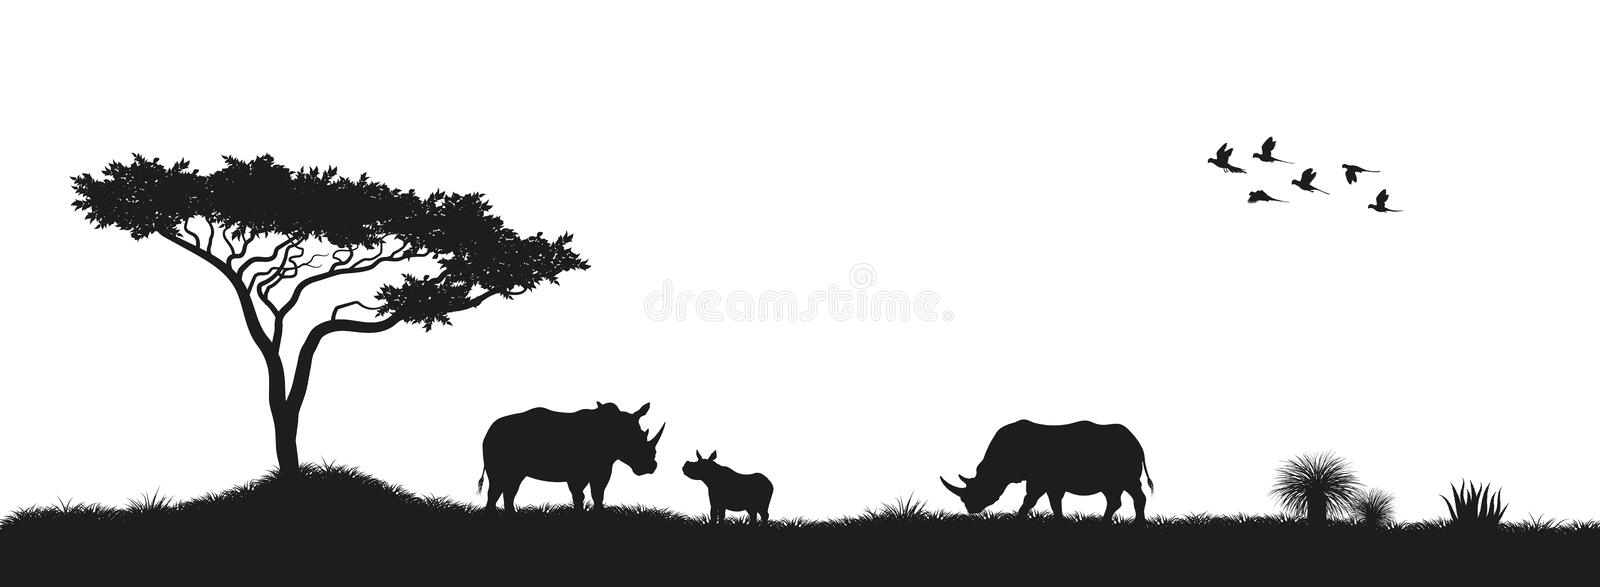 Black silhouette of rhinoceroses and trees in savannah. Animals of Africa. African landscape. Panorama of wild nature stock illustration